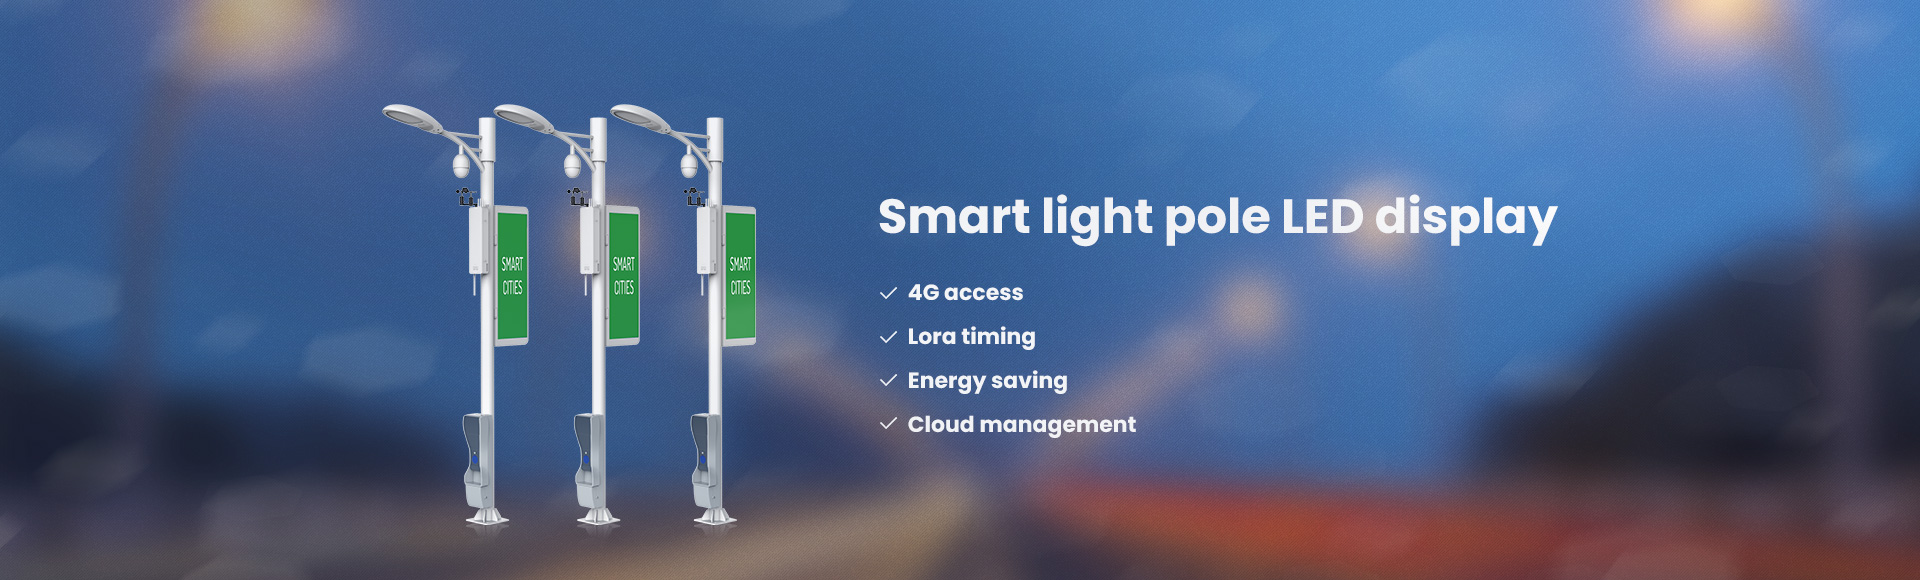 HXTECH SL smart light pole LED display